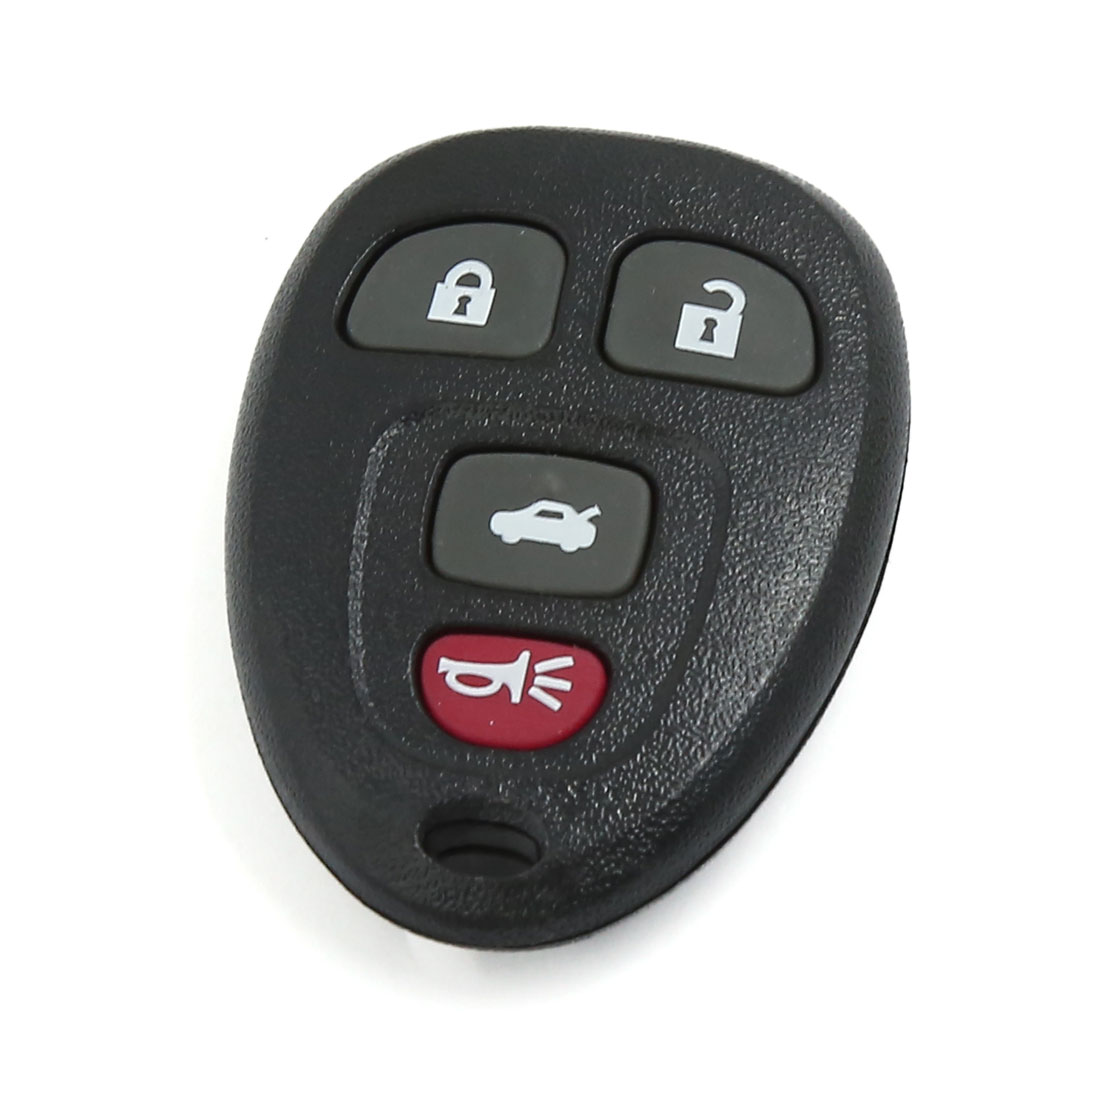 Replacement Uncut Remote Start Keyless Entry Key Fob Control for OUC60270